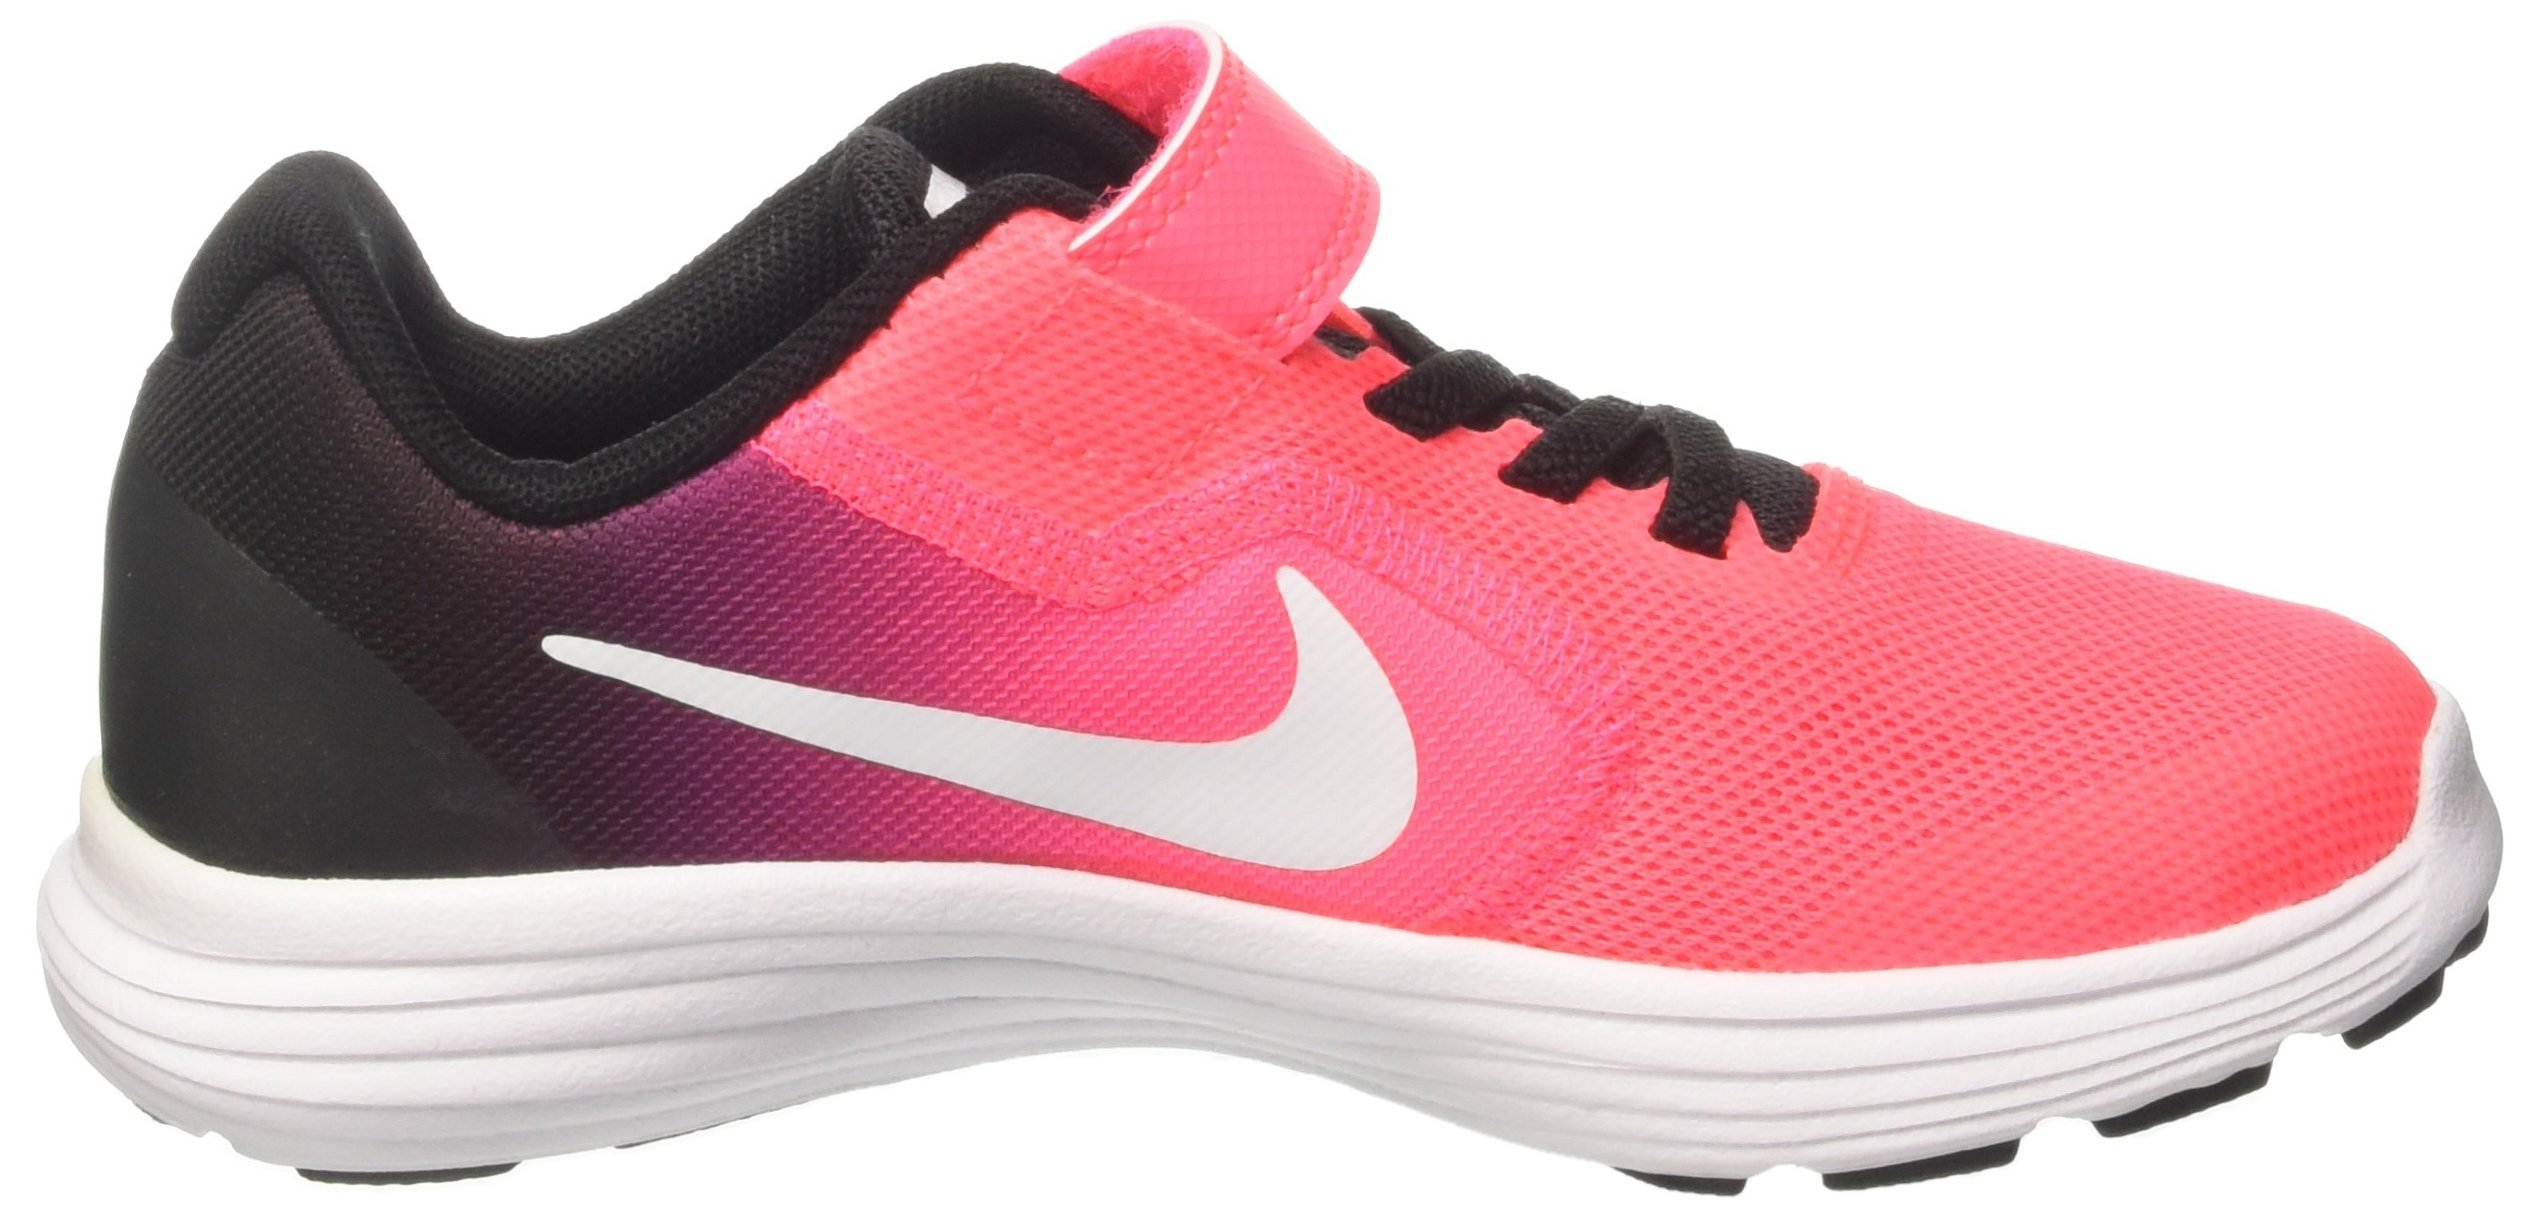 NIKE Kids' Revolution 3 (Psv) Running-Shoes, Black/White/Racer Pink/Black, 1 M US Little Kid by Nike (Image #6)